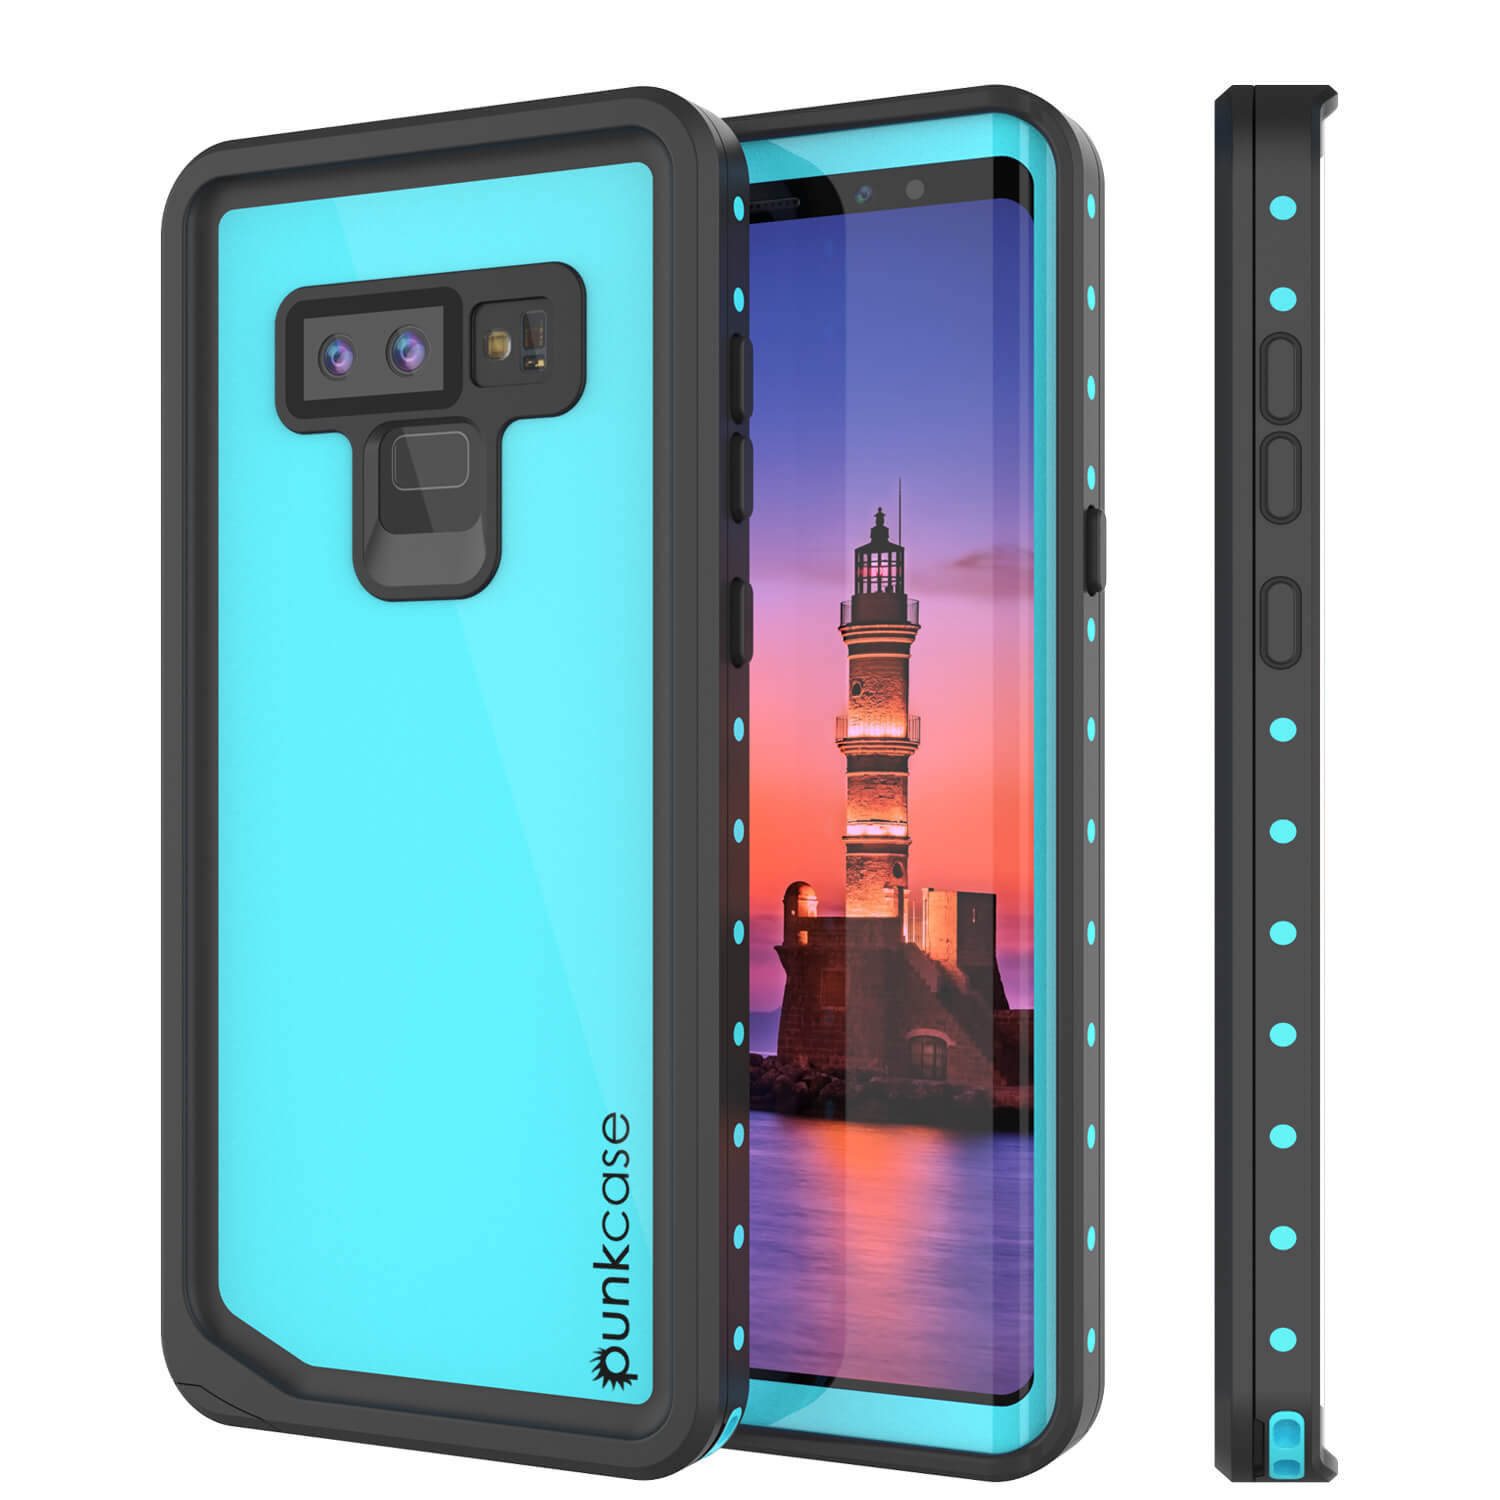 Galaxy Note 9 Waterproof Case, Punkcase Studstar Series Teal Thin Armor Cover